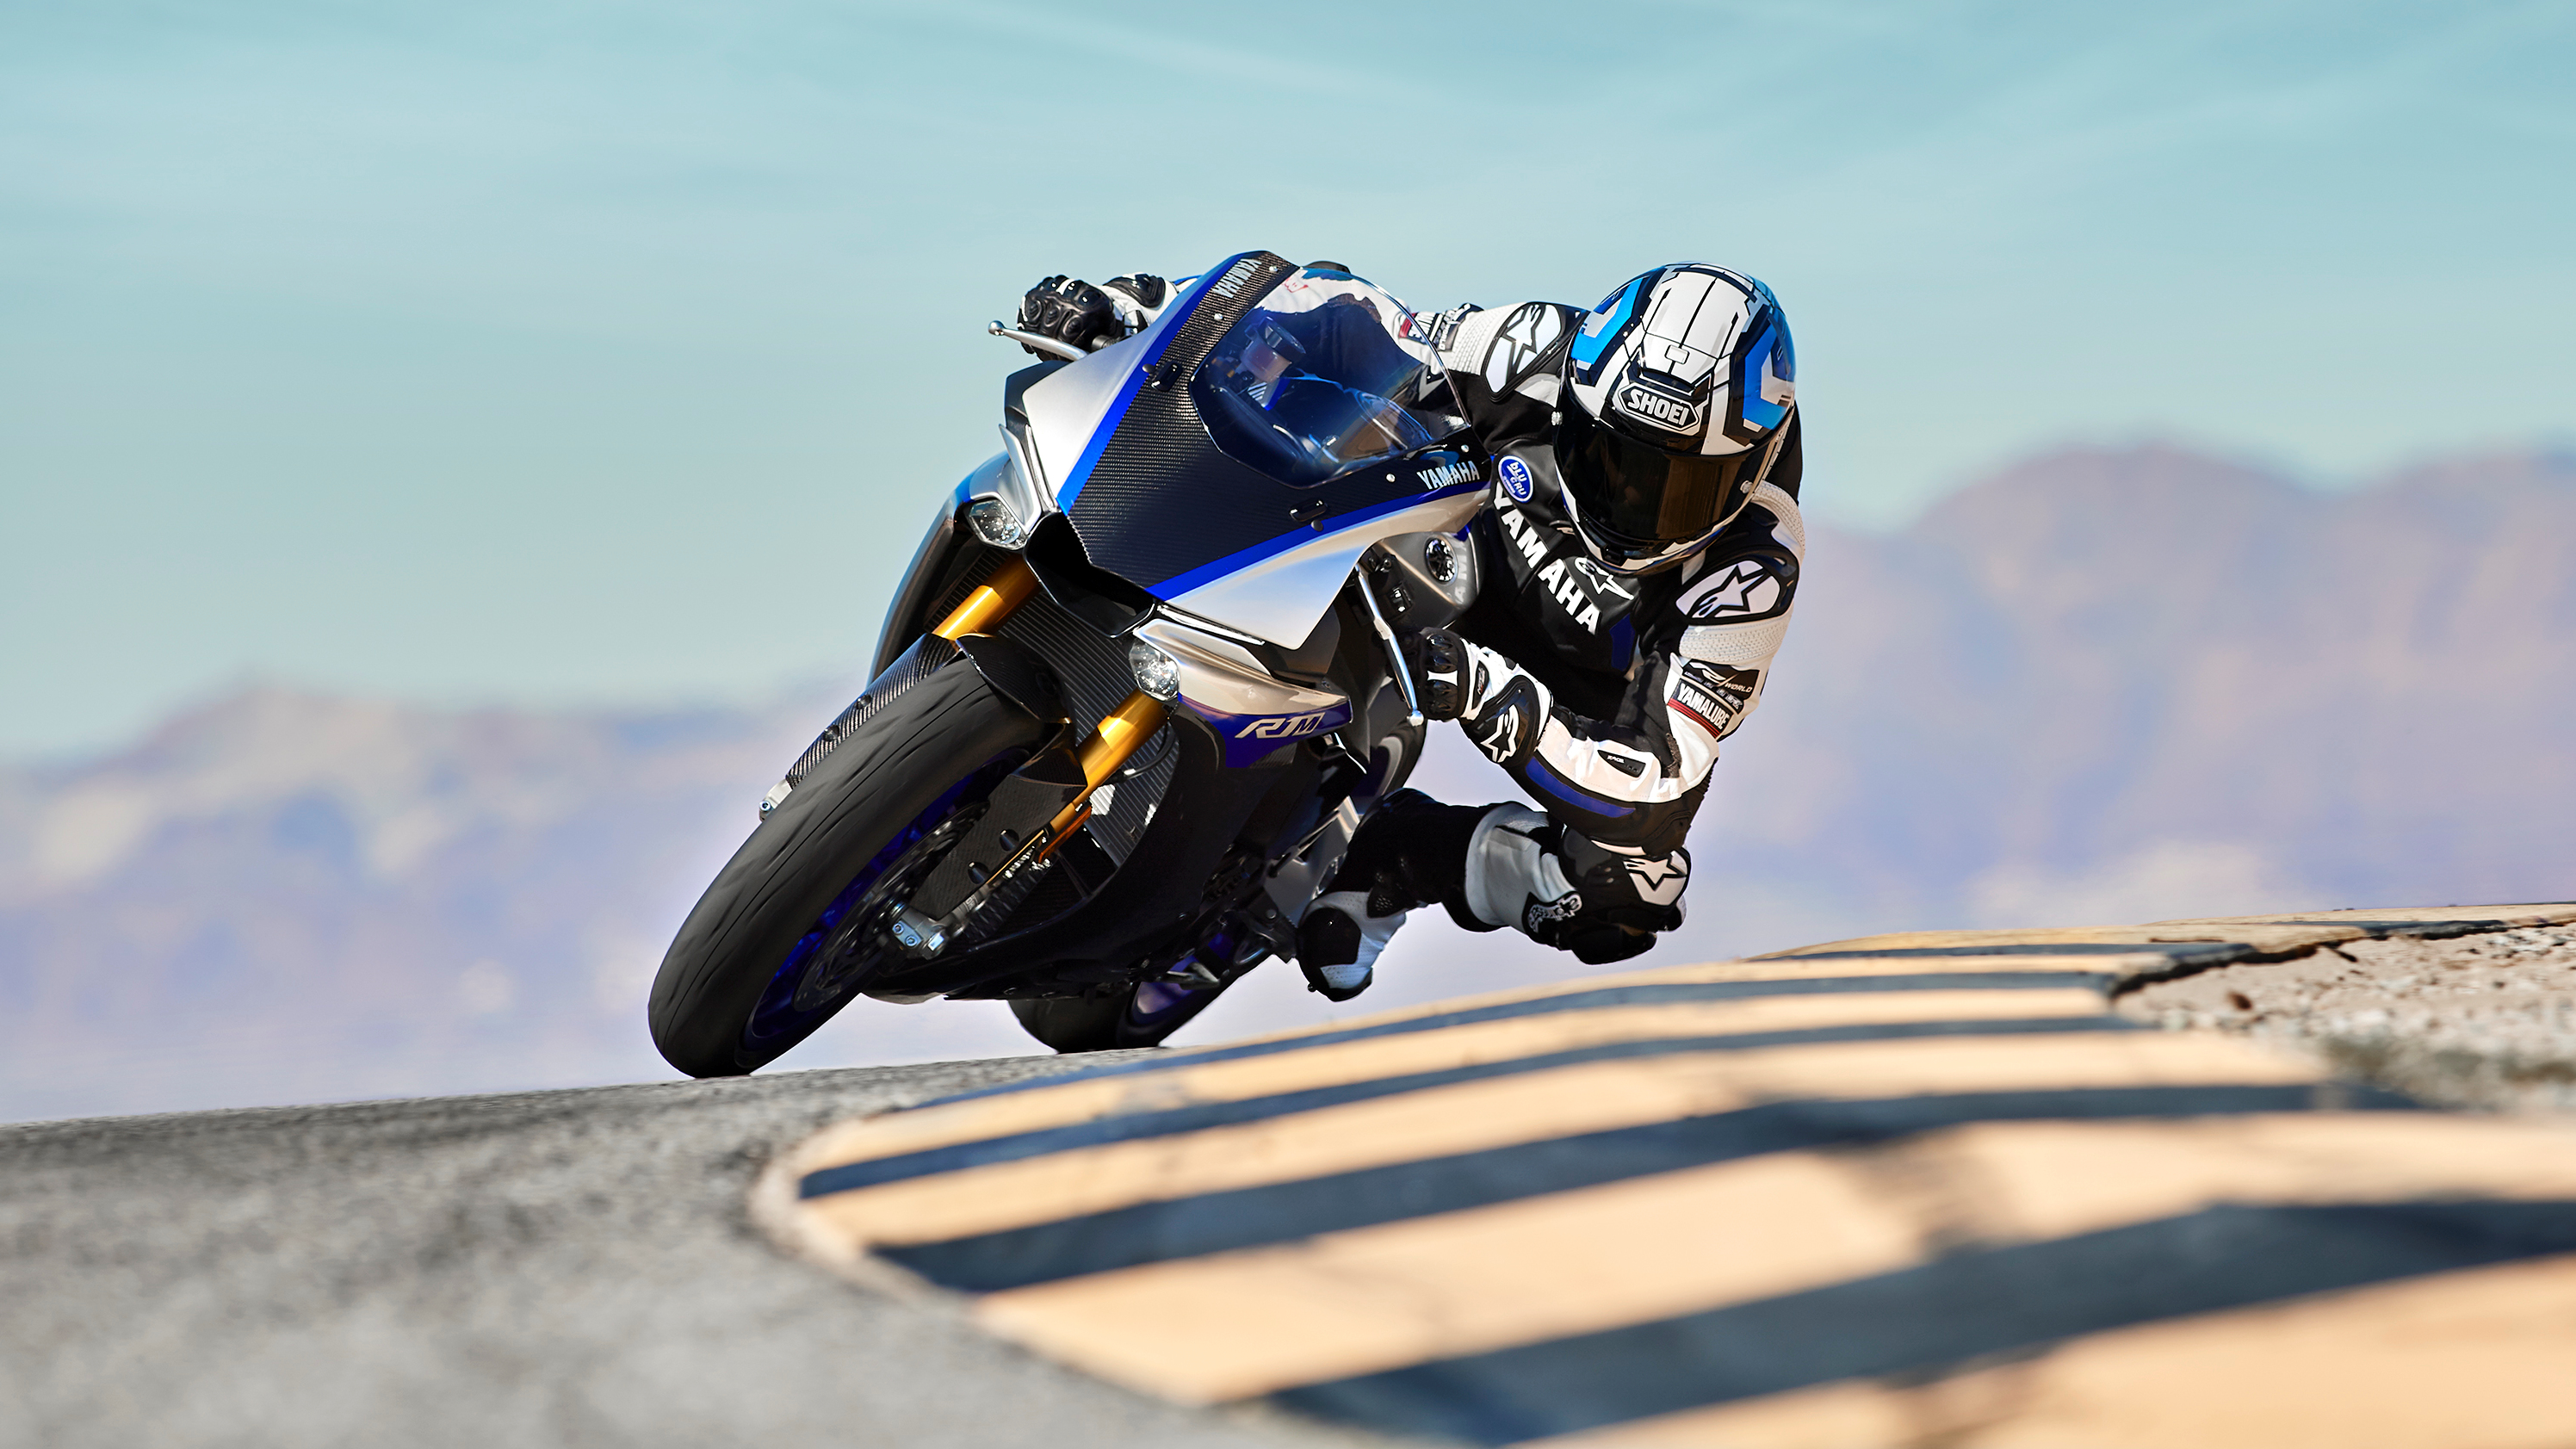 A new Yamaha YZF-R1 on the way because of Euro5 rules?